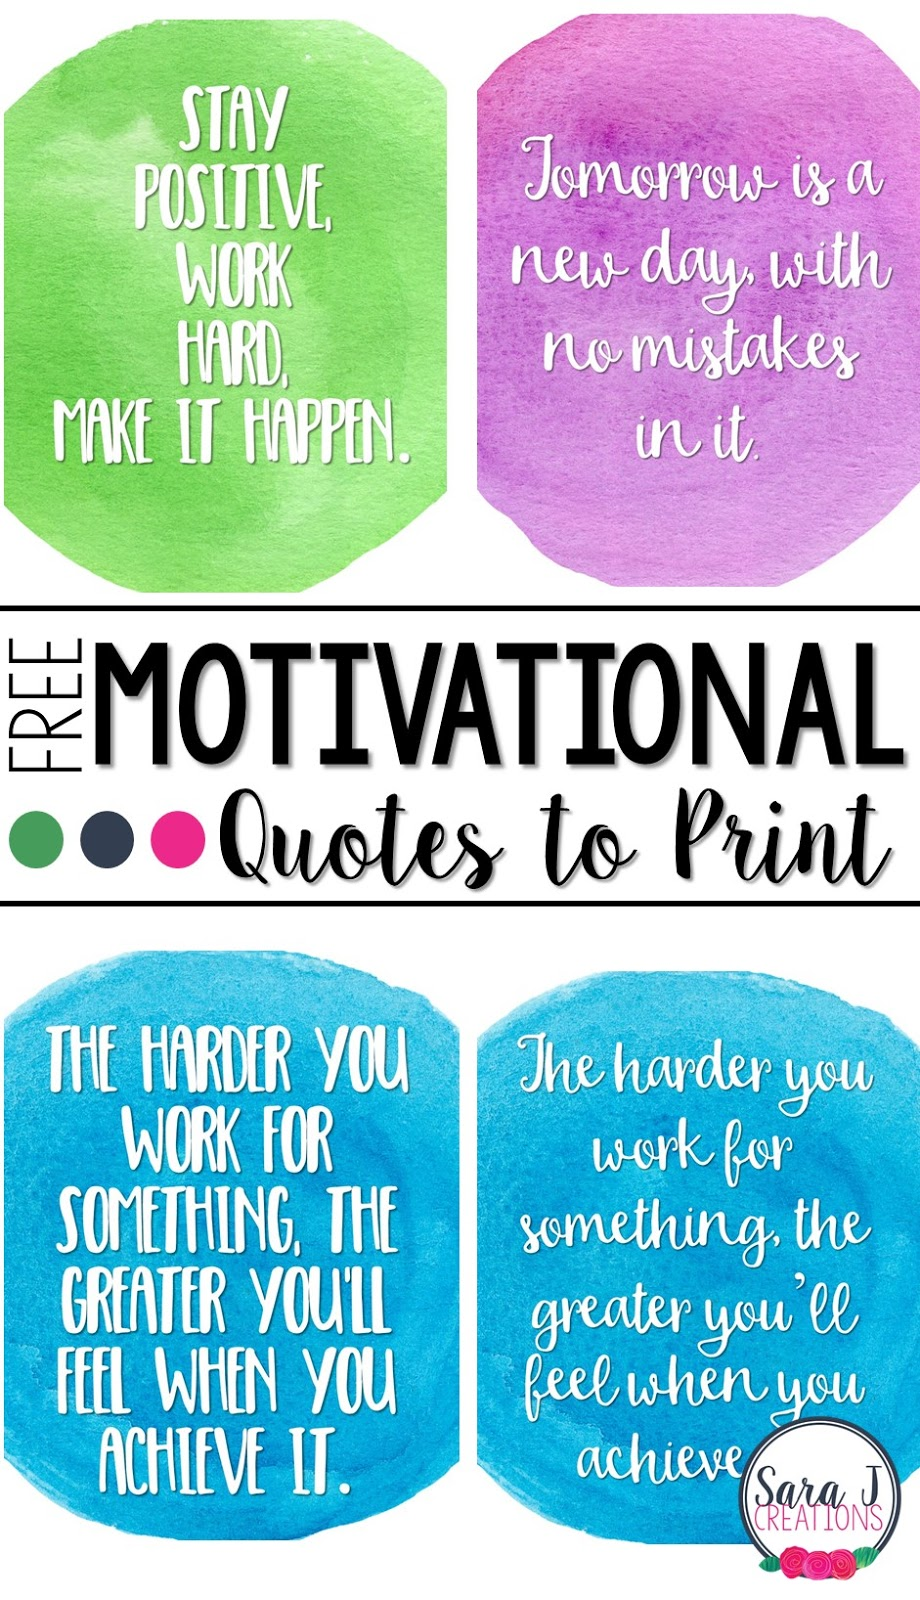 photograph relating to Free Printable Motivational Quotes known as Excess Printable Offers toward Preserve Your self Transferring Sara J Creations